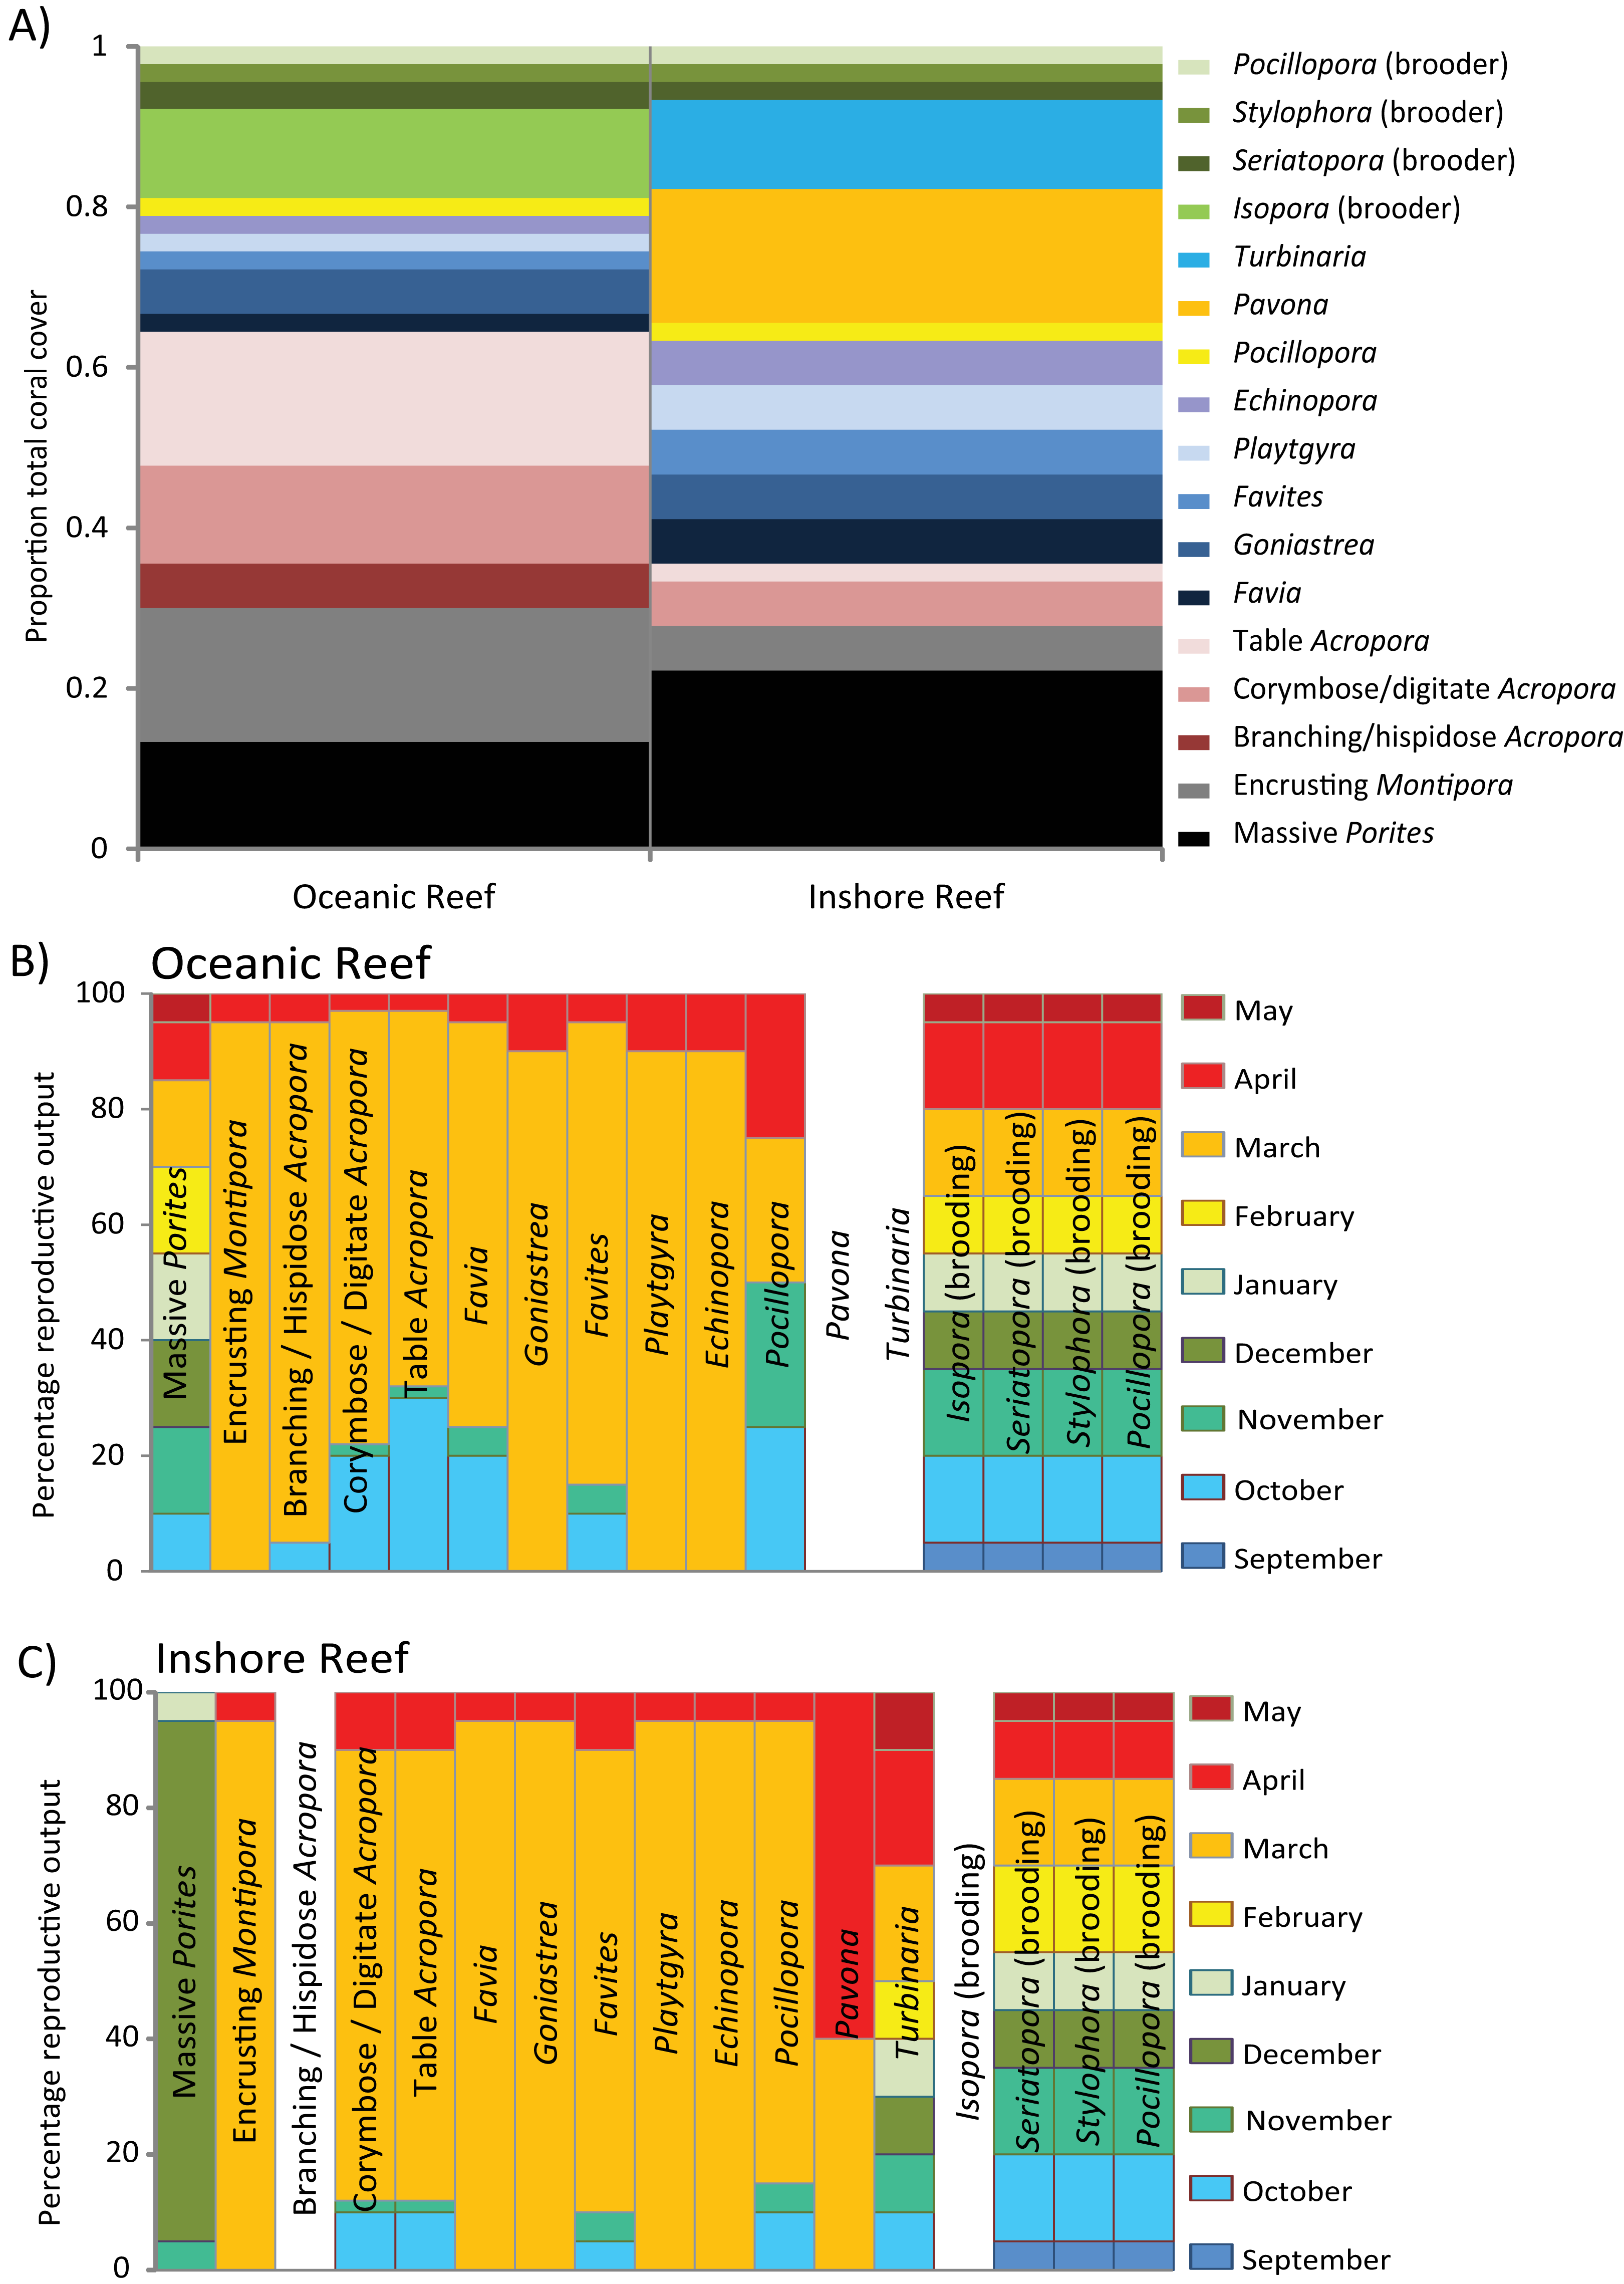 Coral groups to total coral cover at a hypothetical oceanic and inshore ree